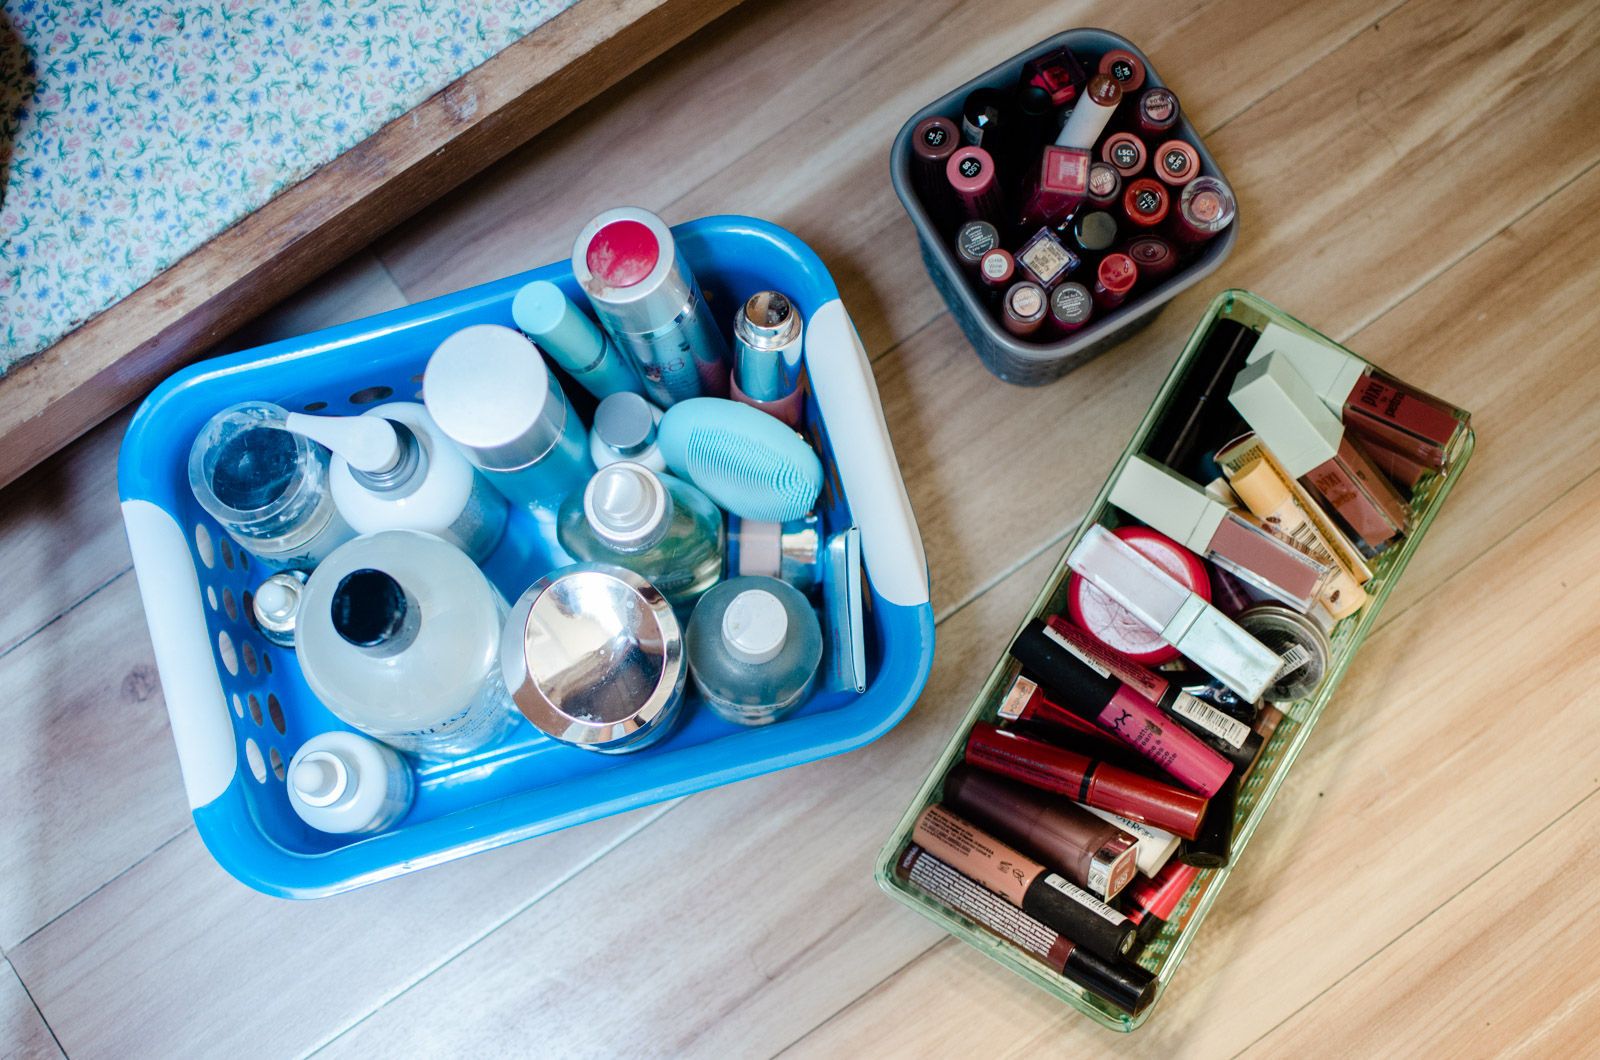 diy under the bathroom sink organization - how to organize the bathroom | bylaurenm.com